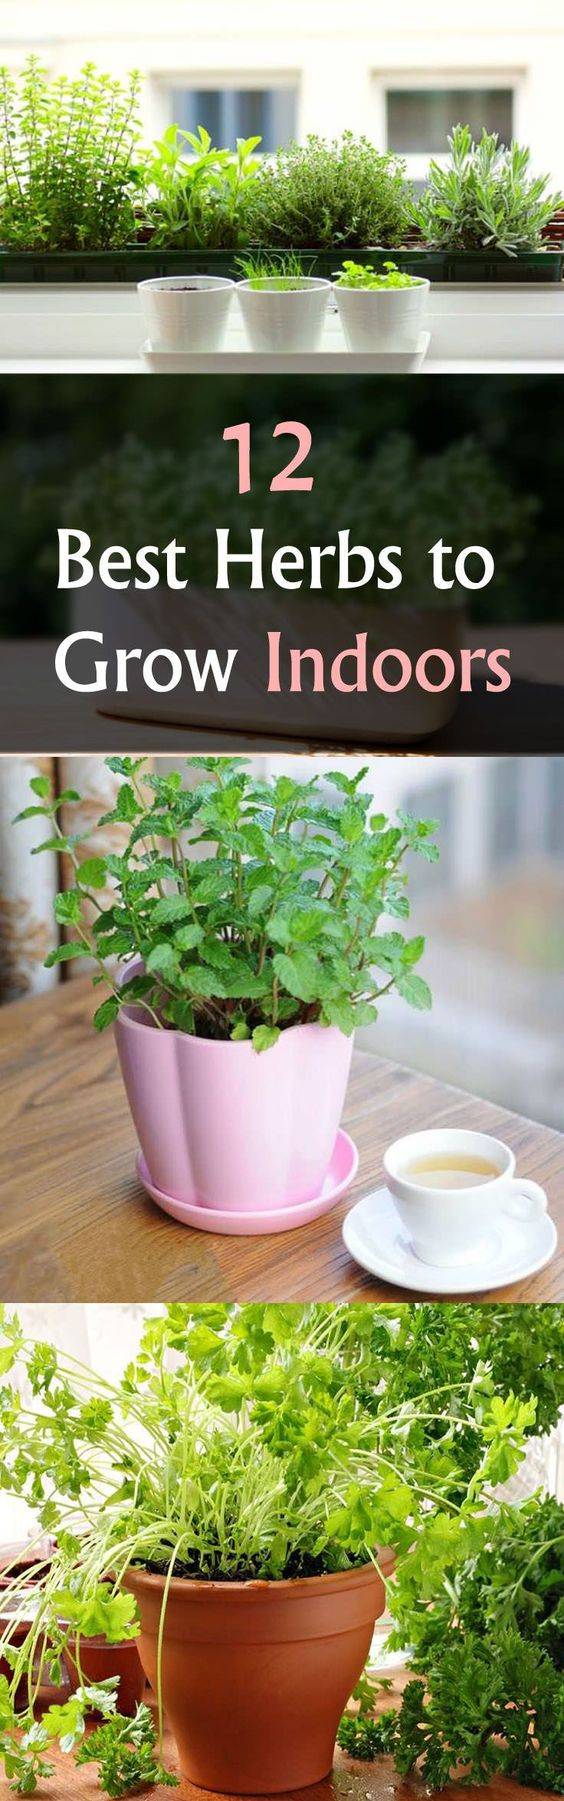 Starting an indoor herb garden? Find out 12 best herbs to grow indoors. These are easiest to grow and require less care.: